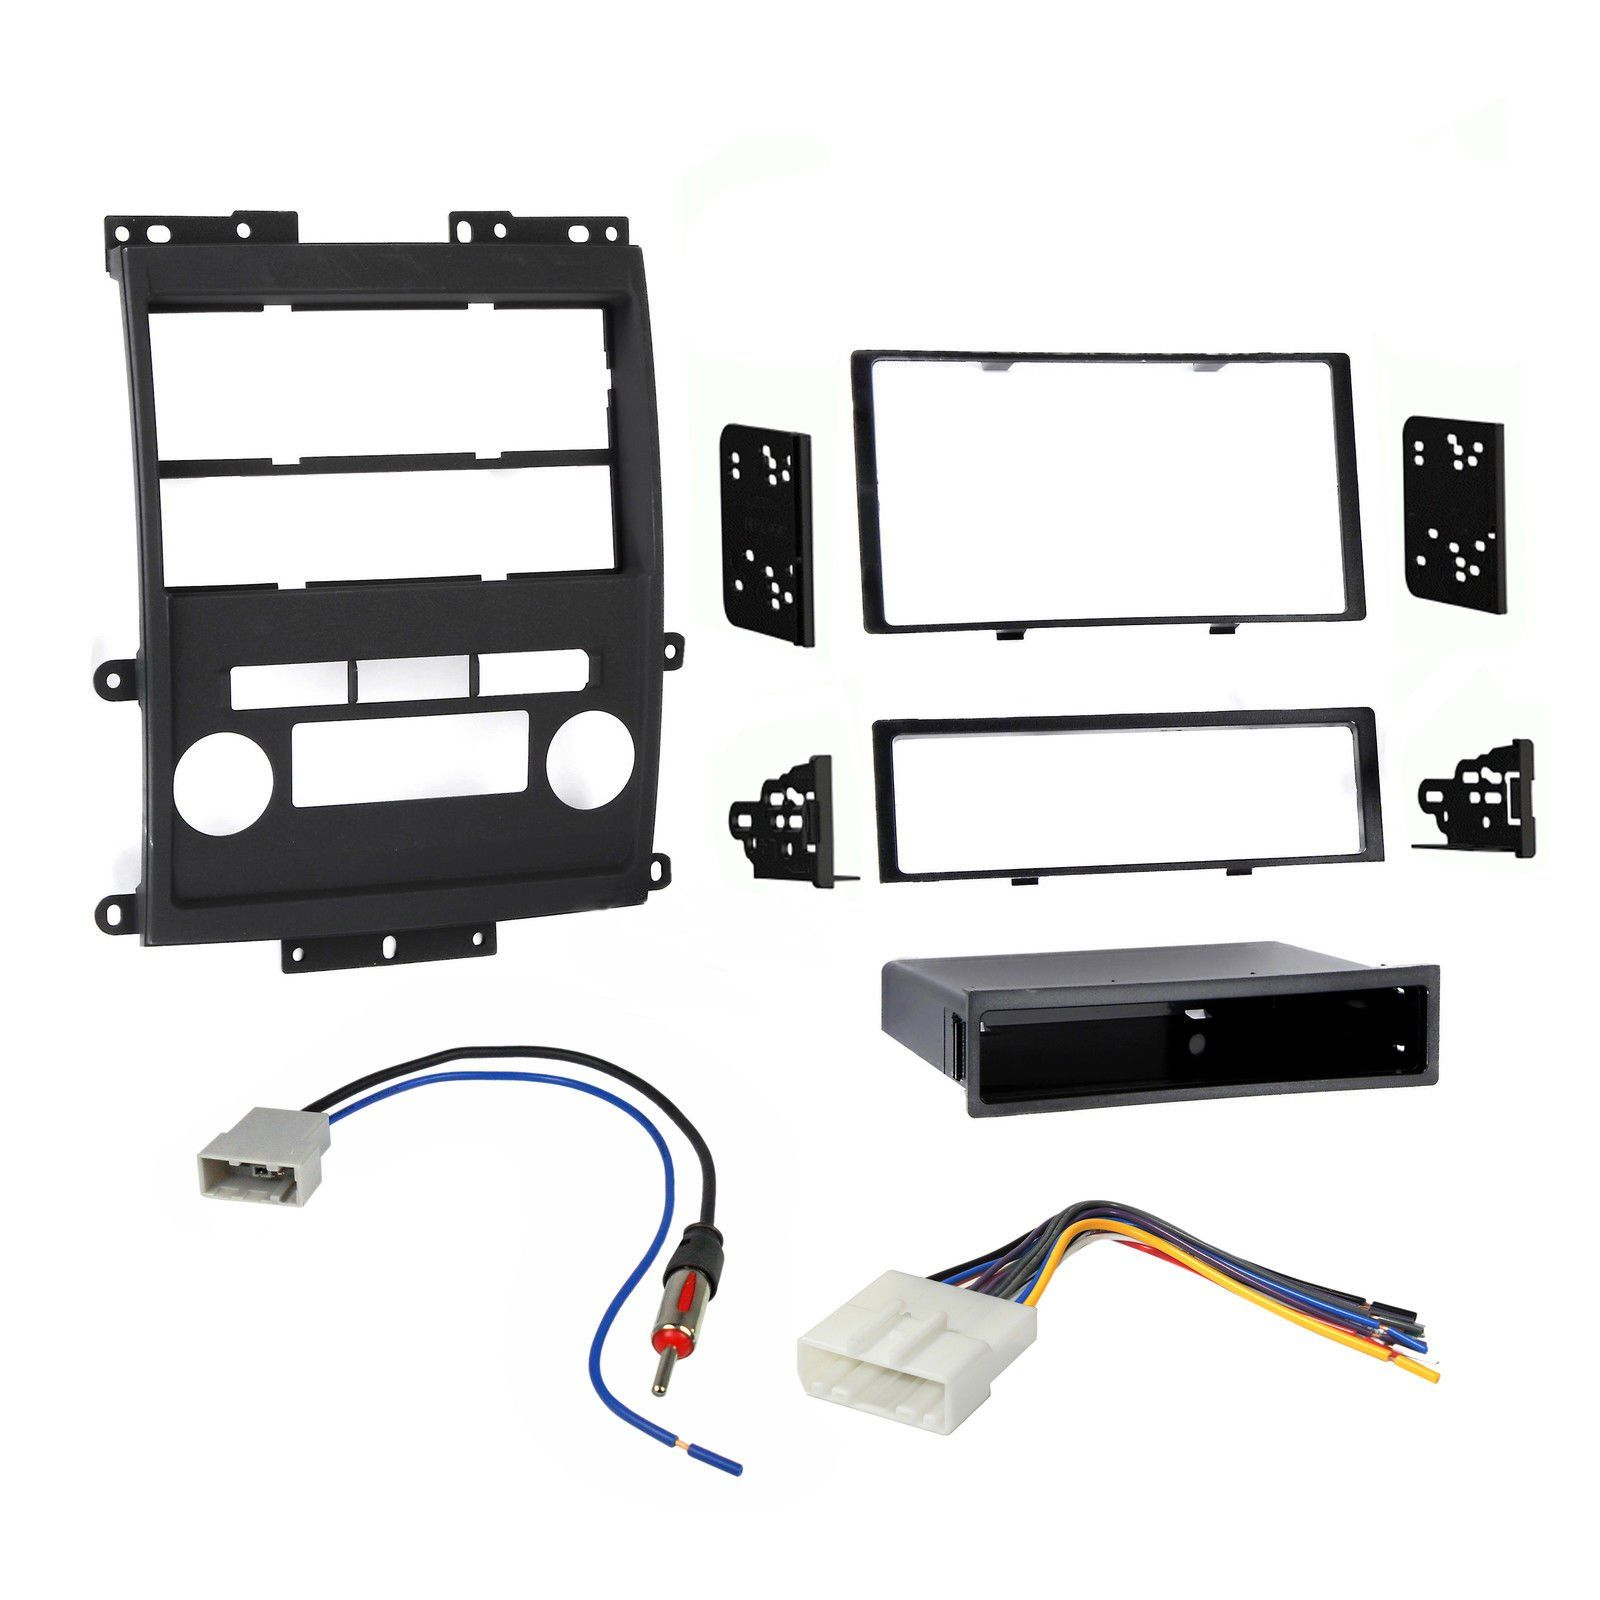 nissan frontier 2009-2013 double din dash kit with wire harness & antenna  adapter